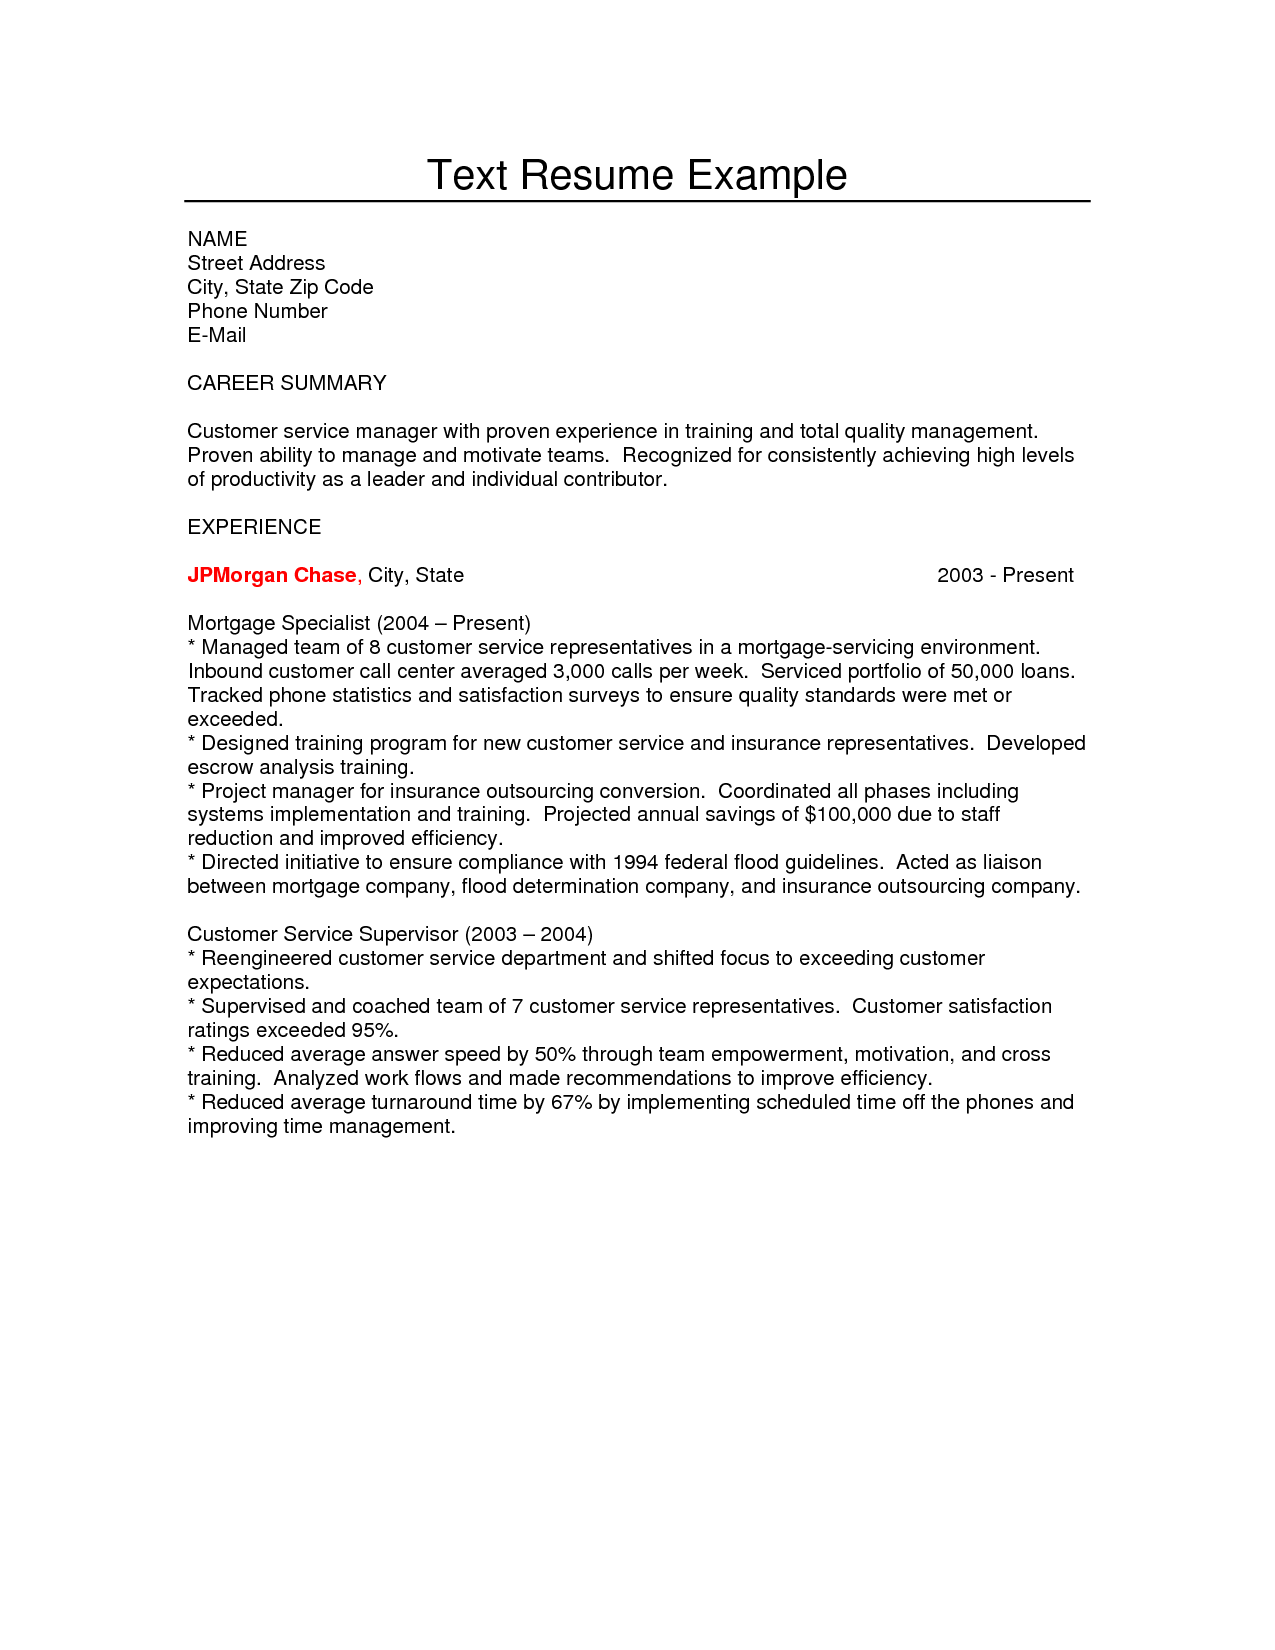 resume text format - Pertamini.co